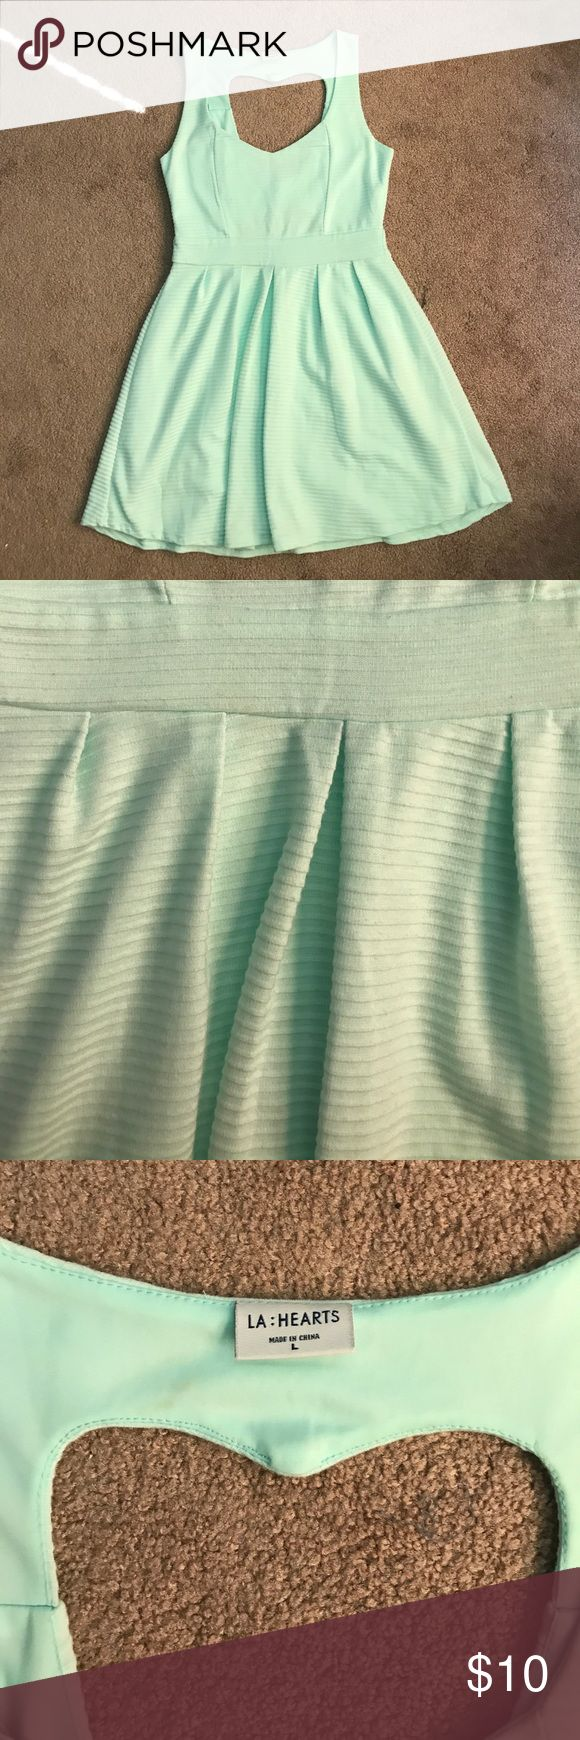 Mint Heart Back Dress Super cute mint colored dress with adorable detailing on the back! Dresses